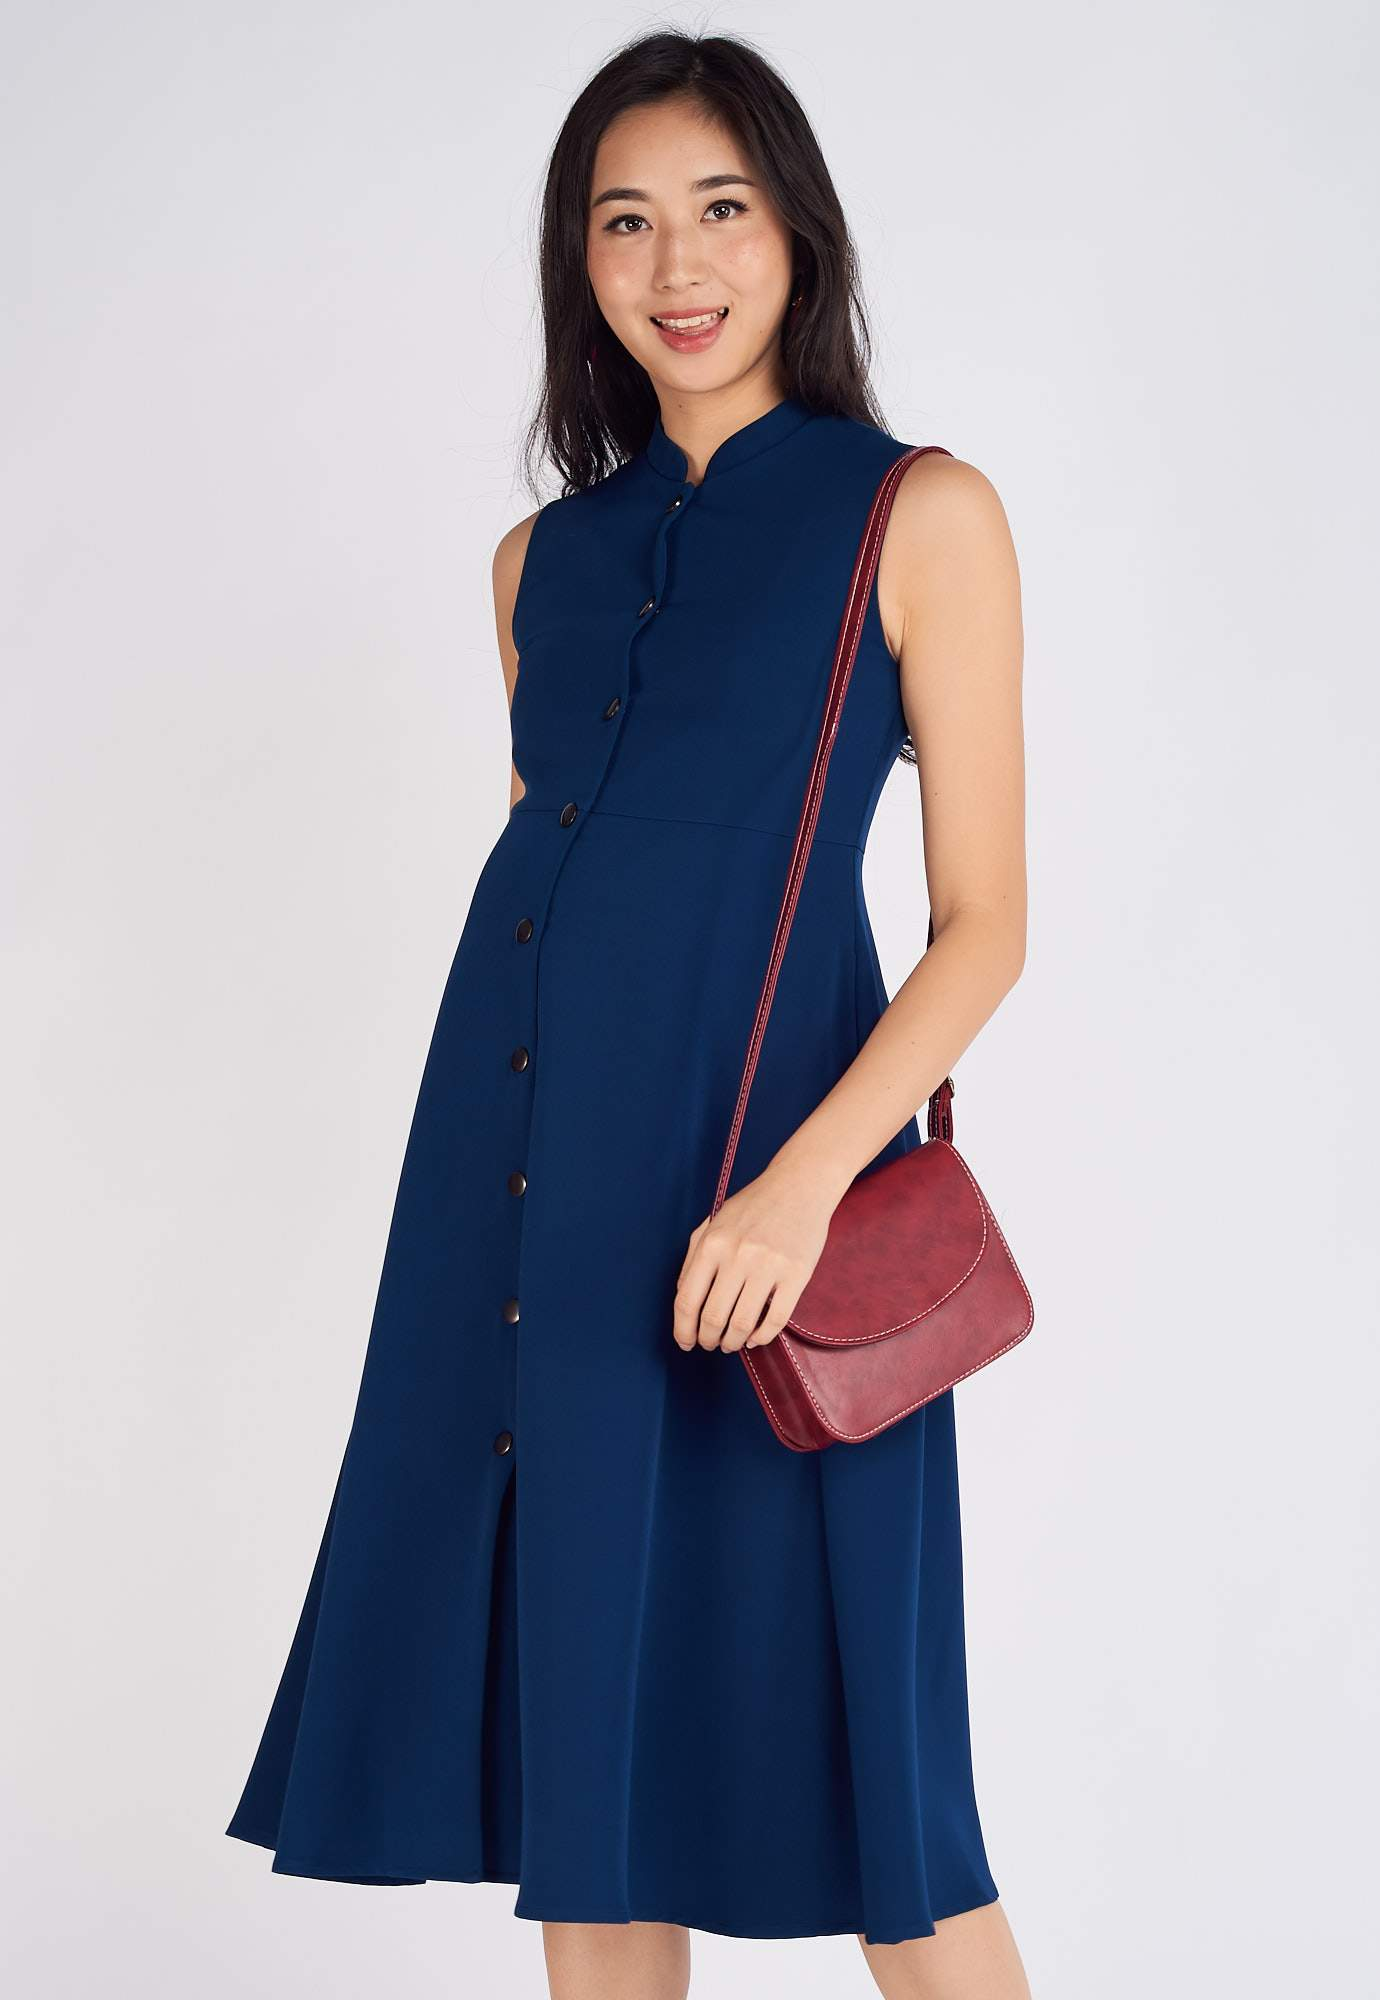 Mavis Mandarin Collar Nursing Dress in Blue  by Jump Eat Cry - Maternity and nursing wear